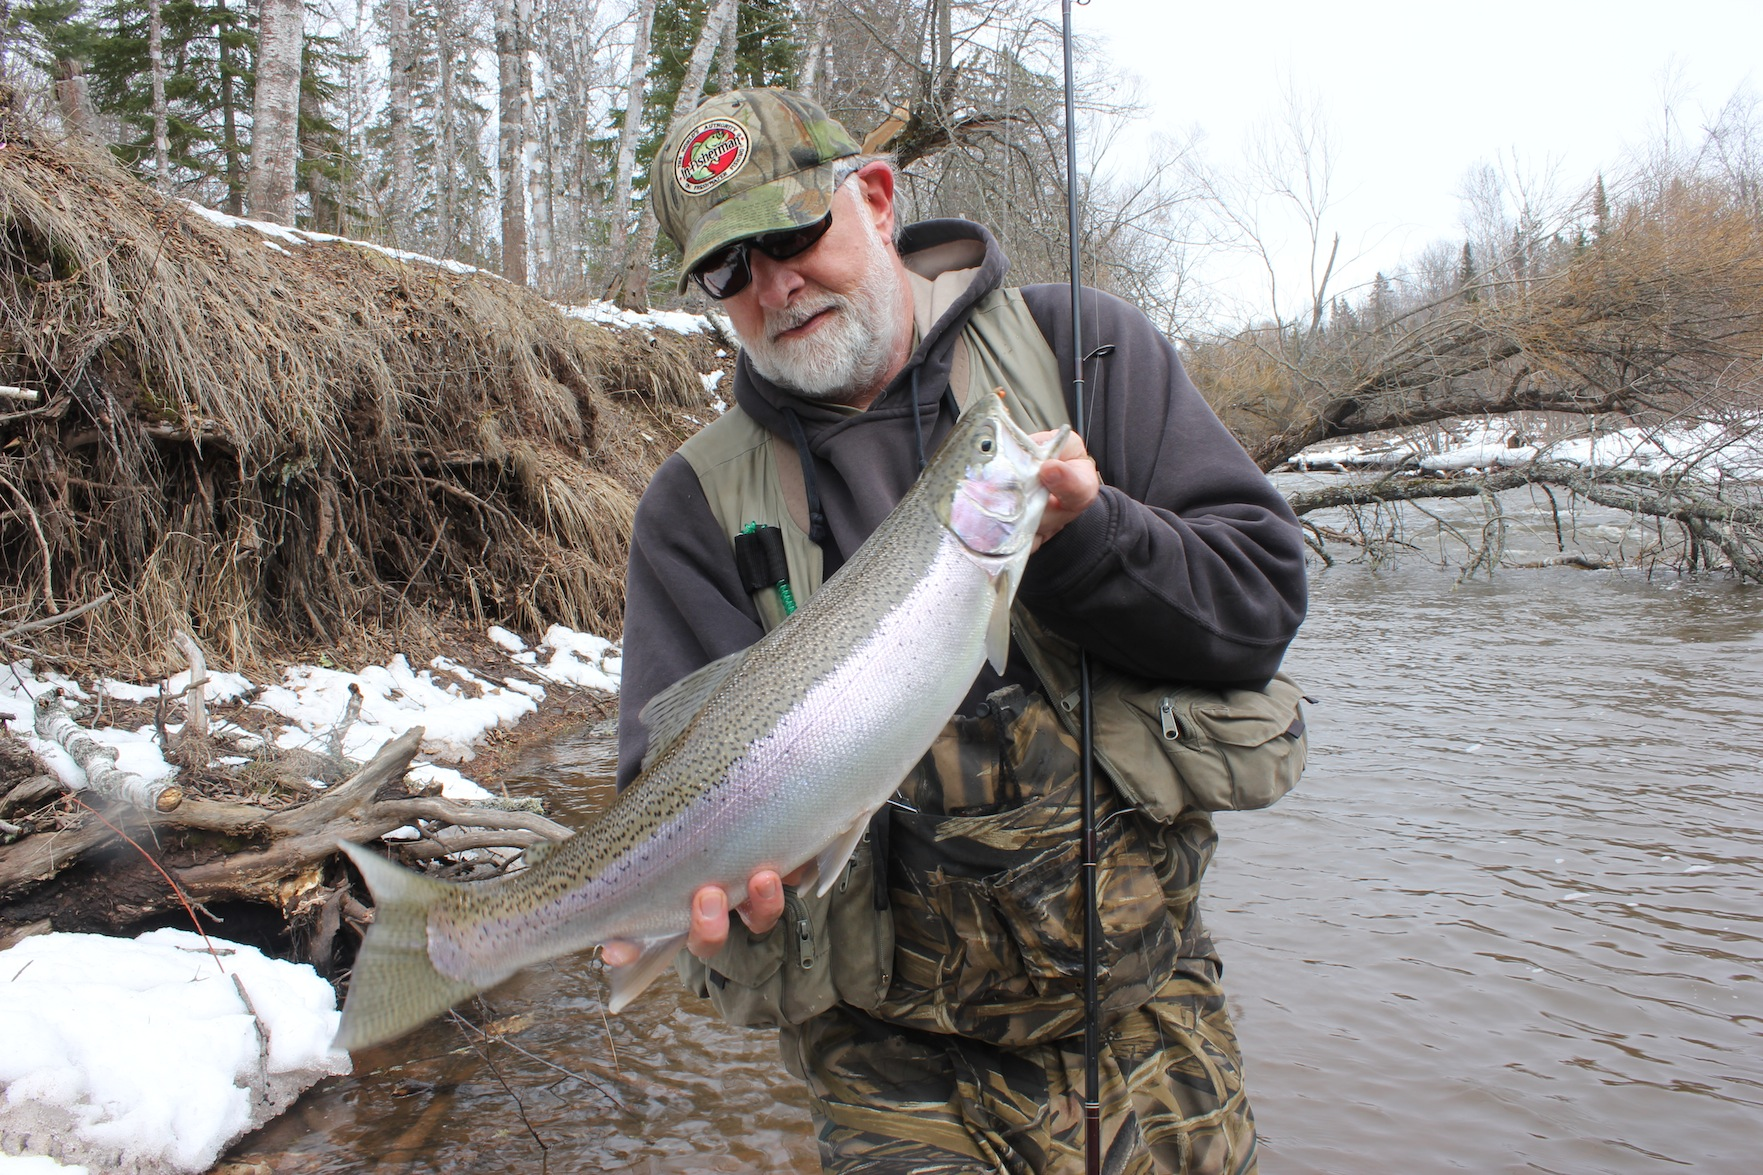 Not a big specimen, by anyone's standards, but look how pristine and healthy she is. Steelhead